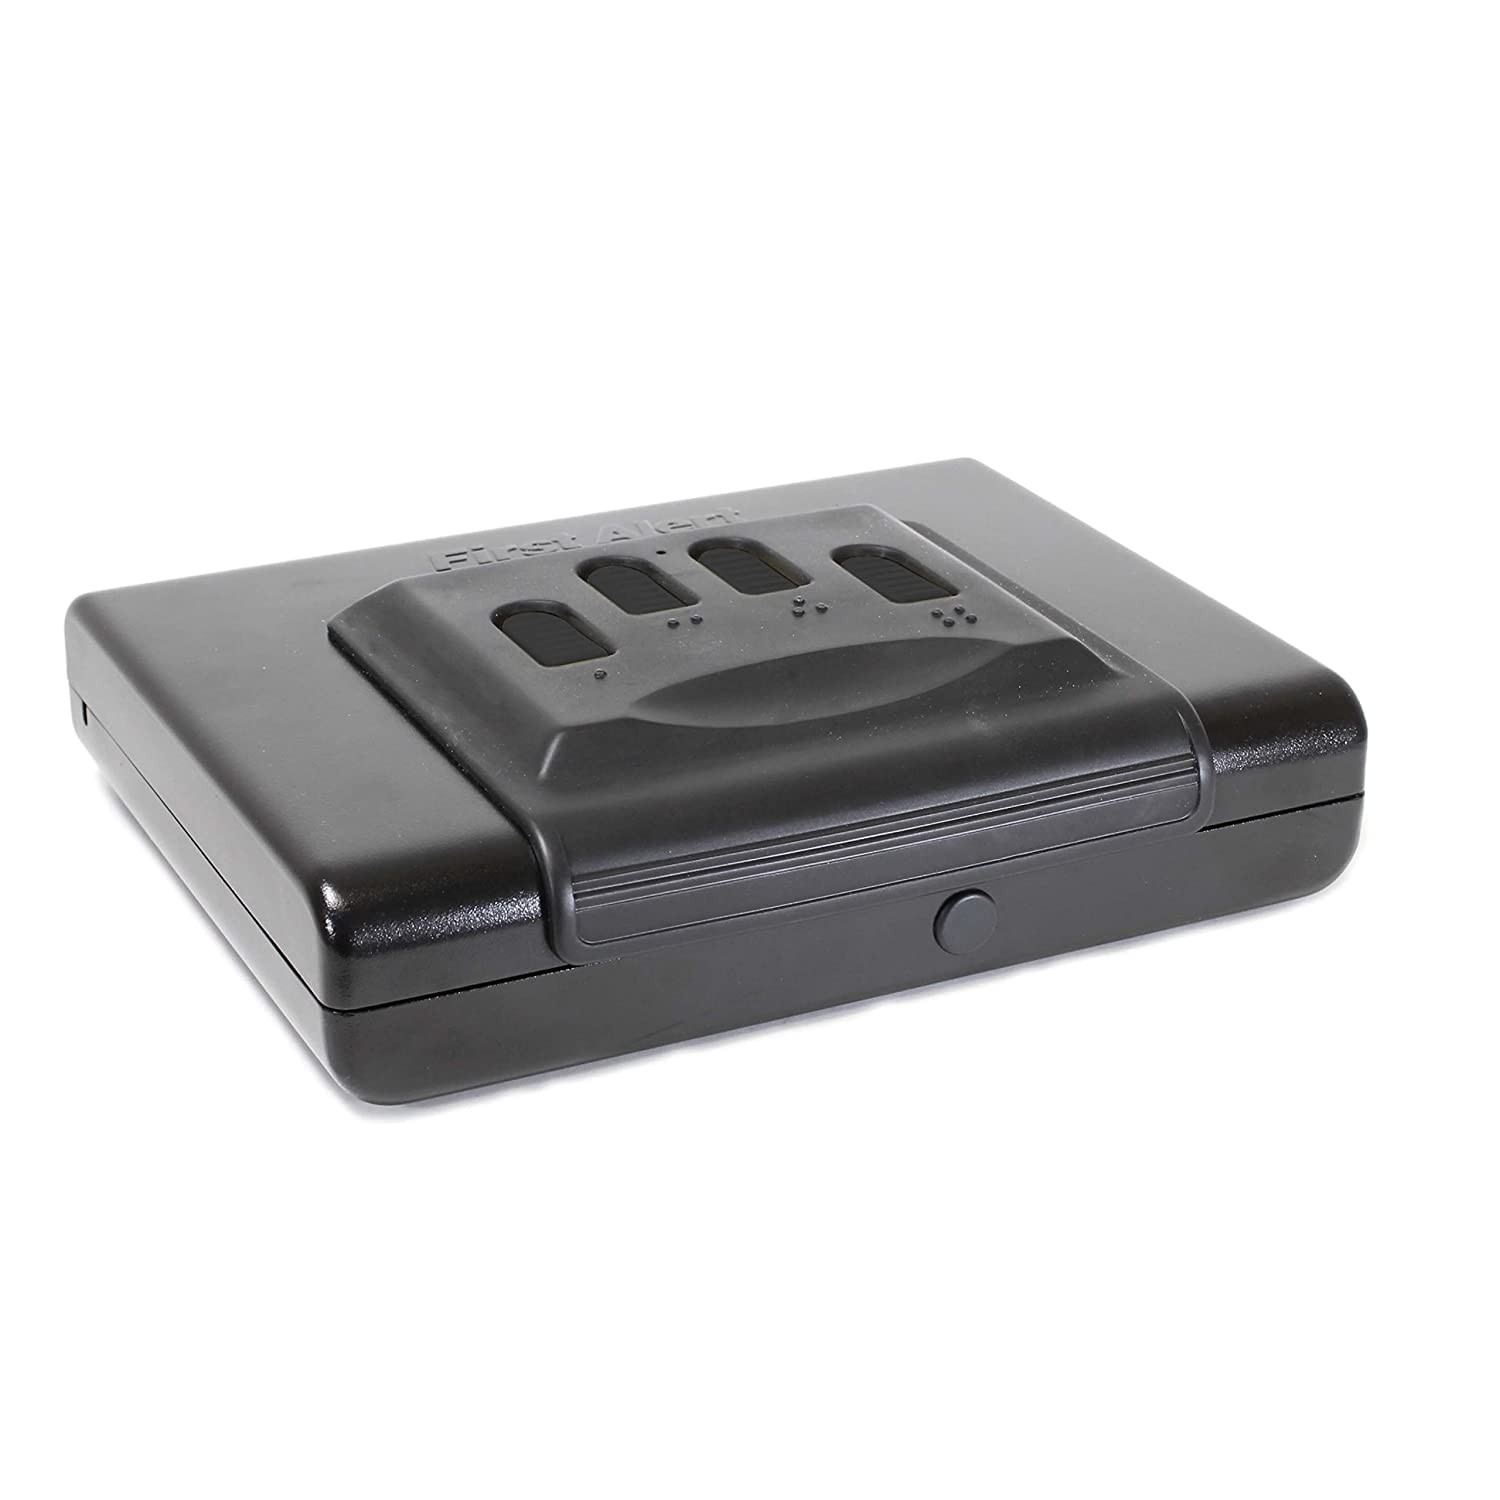 10. First Alert 5200DF Portable Handgun or Pistol Safe